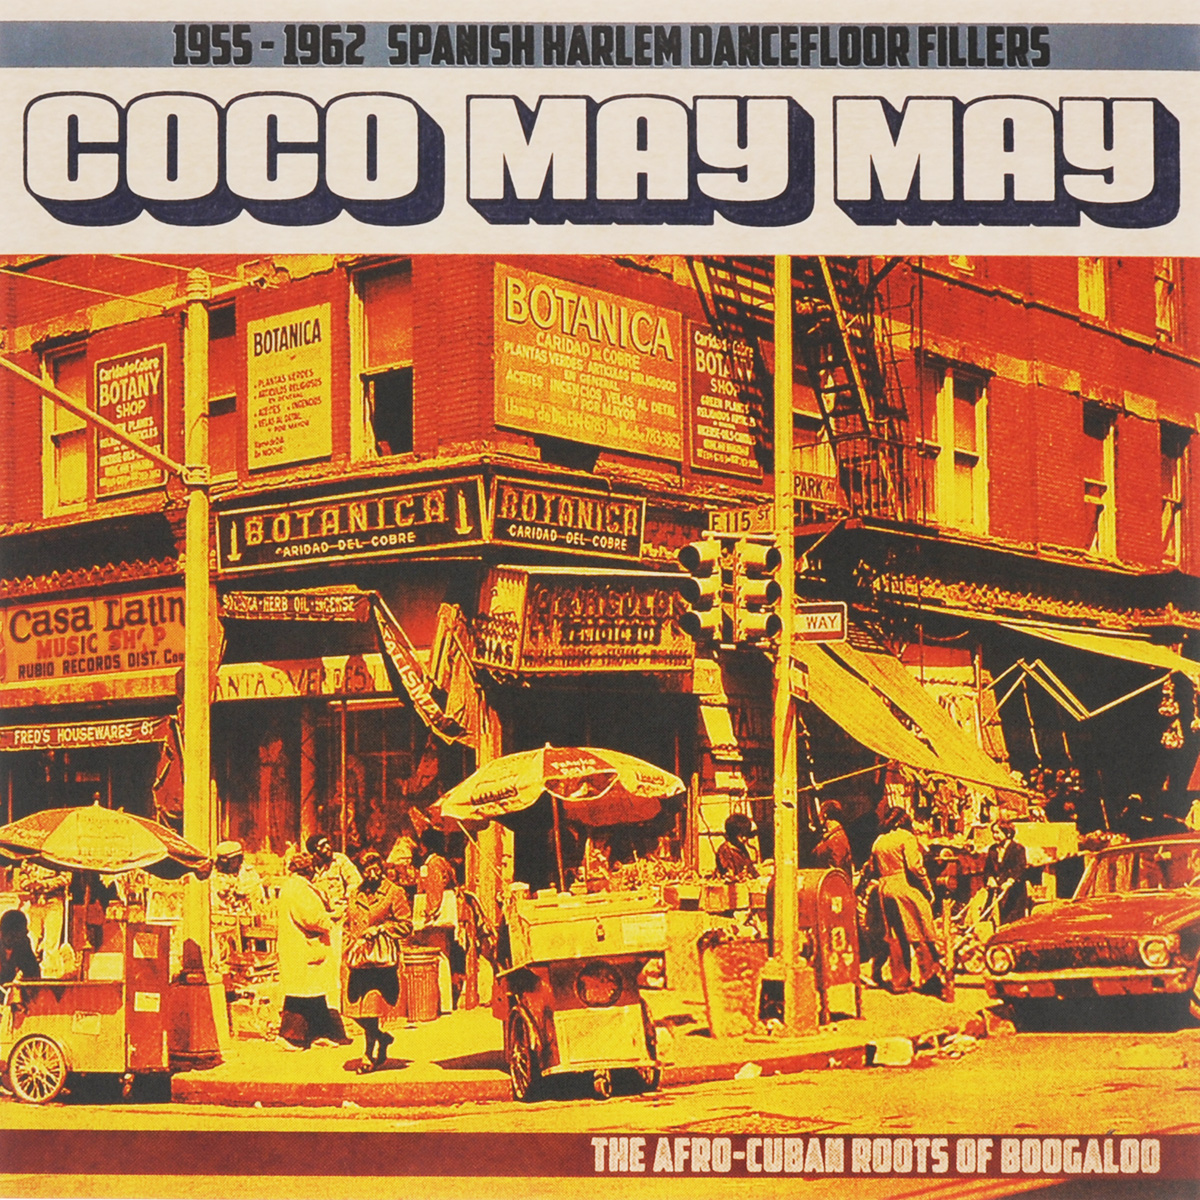 Coco May May. 1955-1962 Spanish Harlem (LP) цены онлайн